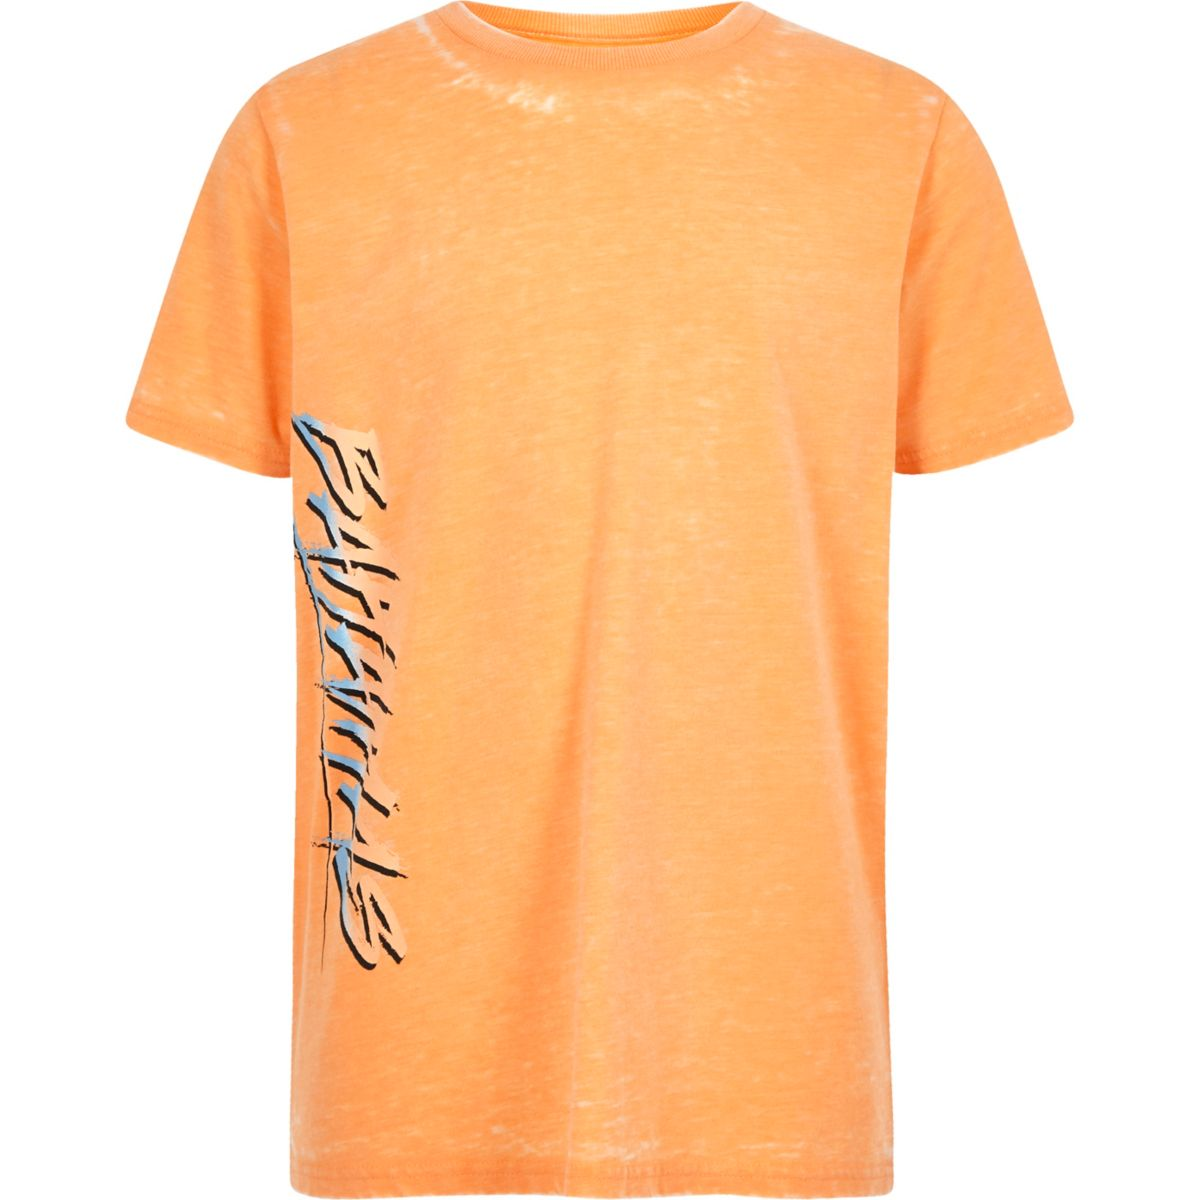 Boys orange burnout 'Bahamas' print T-shirt